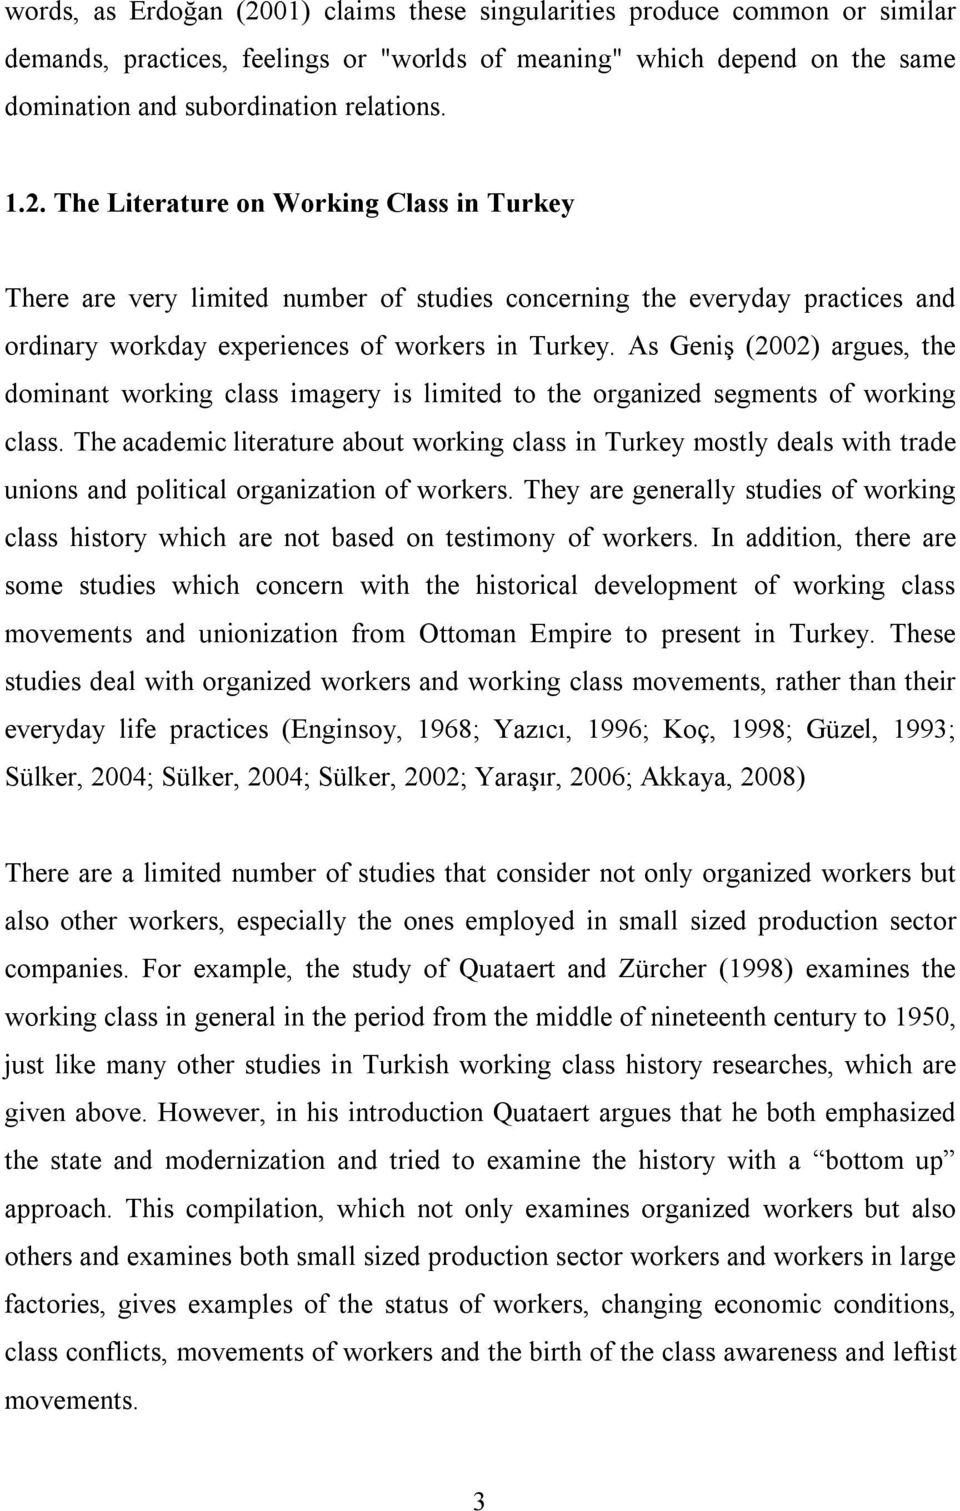 The academic literature about working class in Turkey mostly deals with trade unions and political organization of workers.